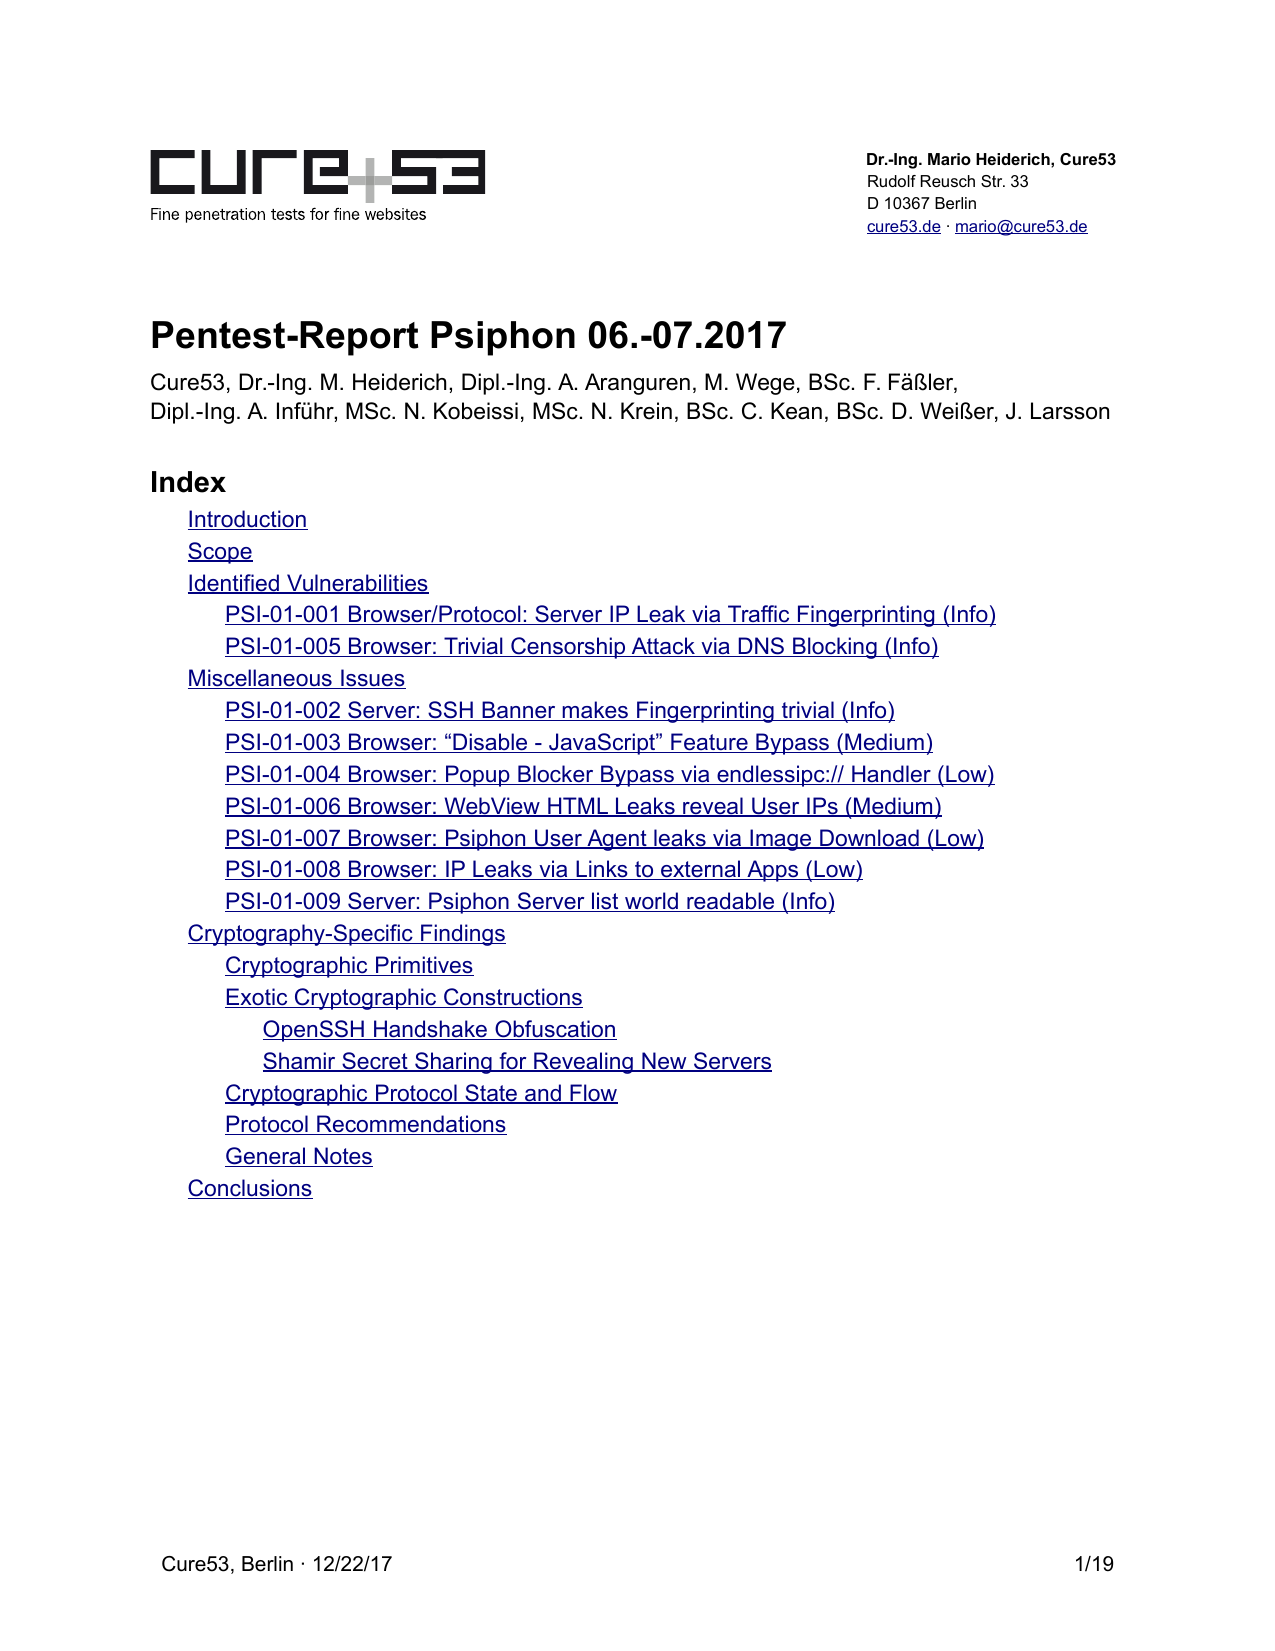 First page of the 'pentest-report psiphon' PDF